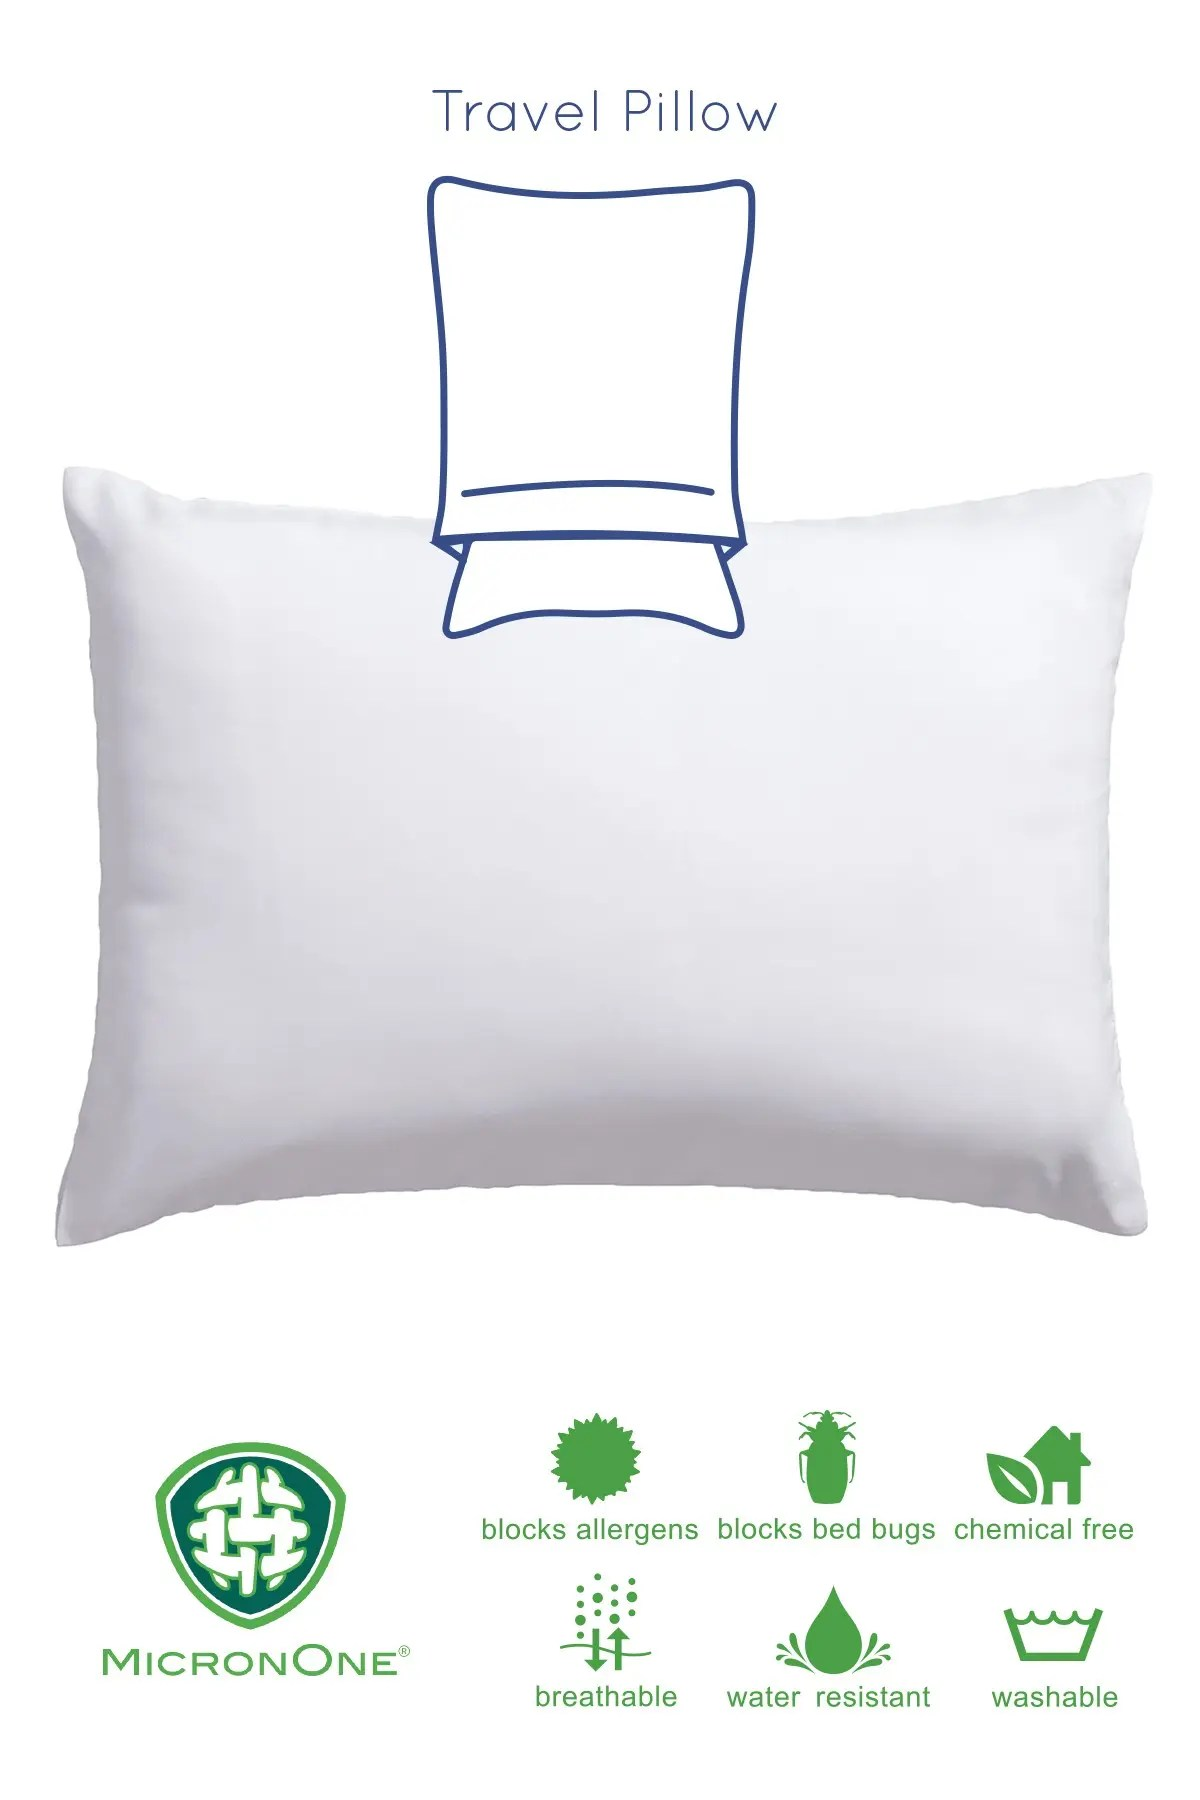 allied home premium micronone king allergen barrier 2 in 1 pillow enhancer and travel pillow nordstrom rack